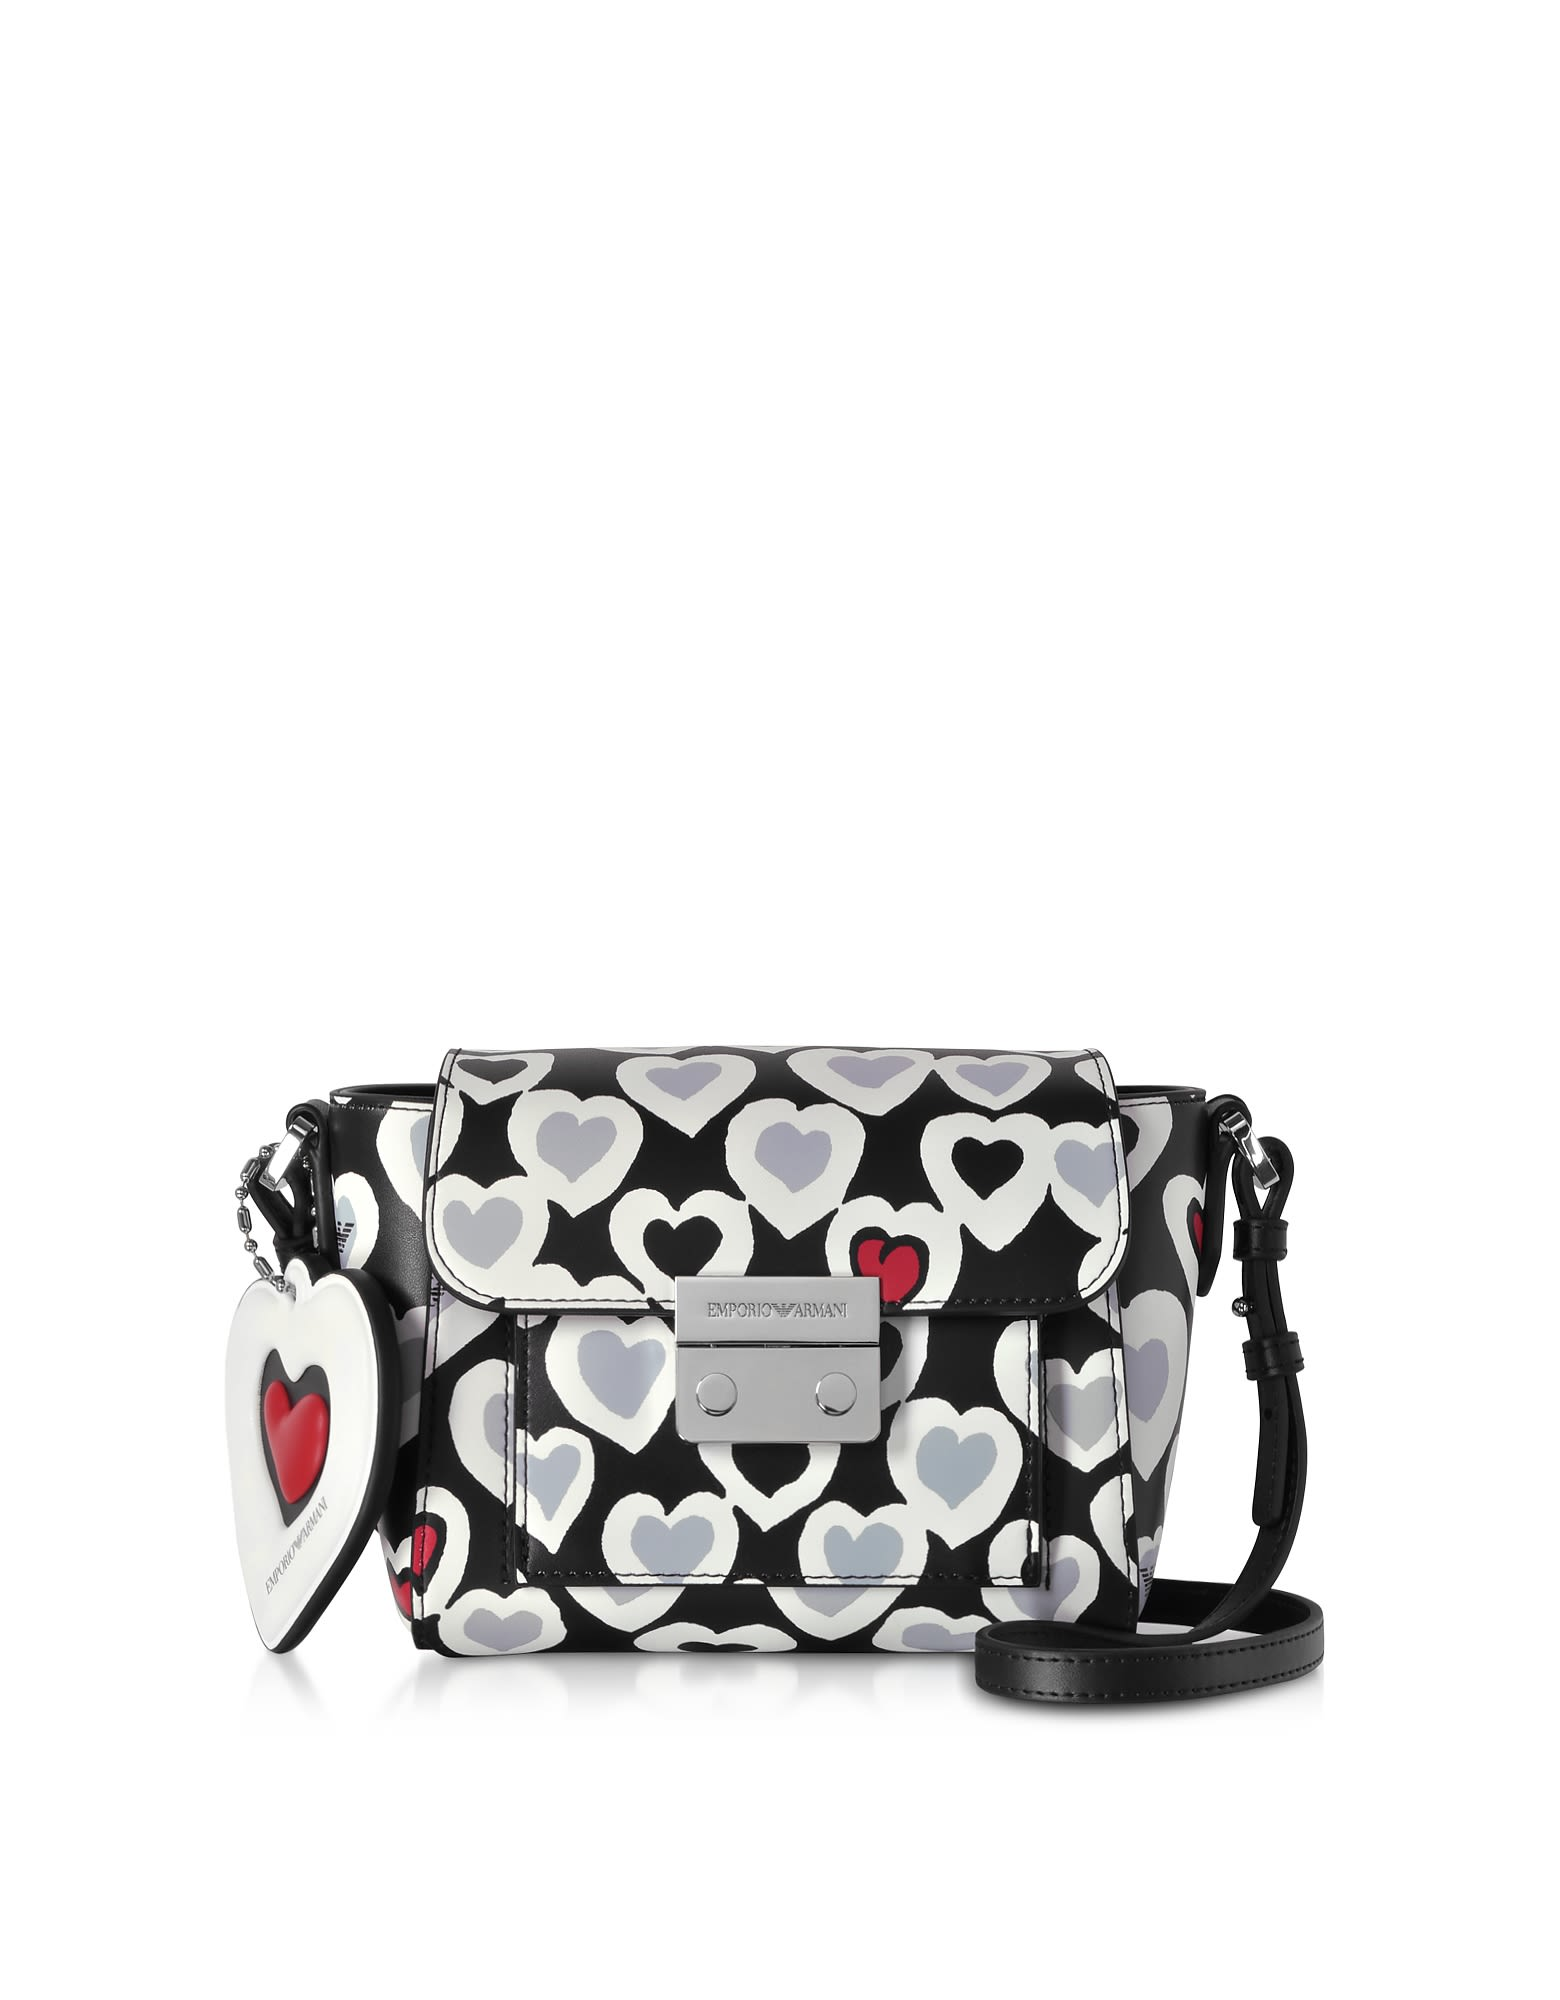 a4da1f84e2a4 Emporio Armani Emporio Armani Small Heart Print Shoulder Bag - Black ...